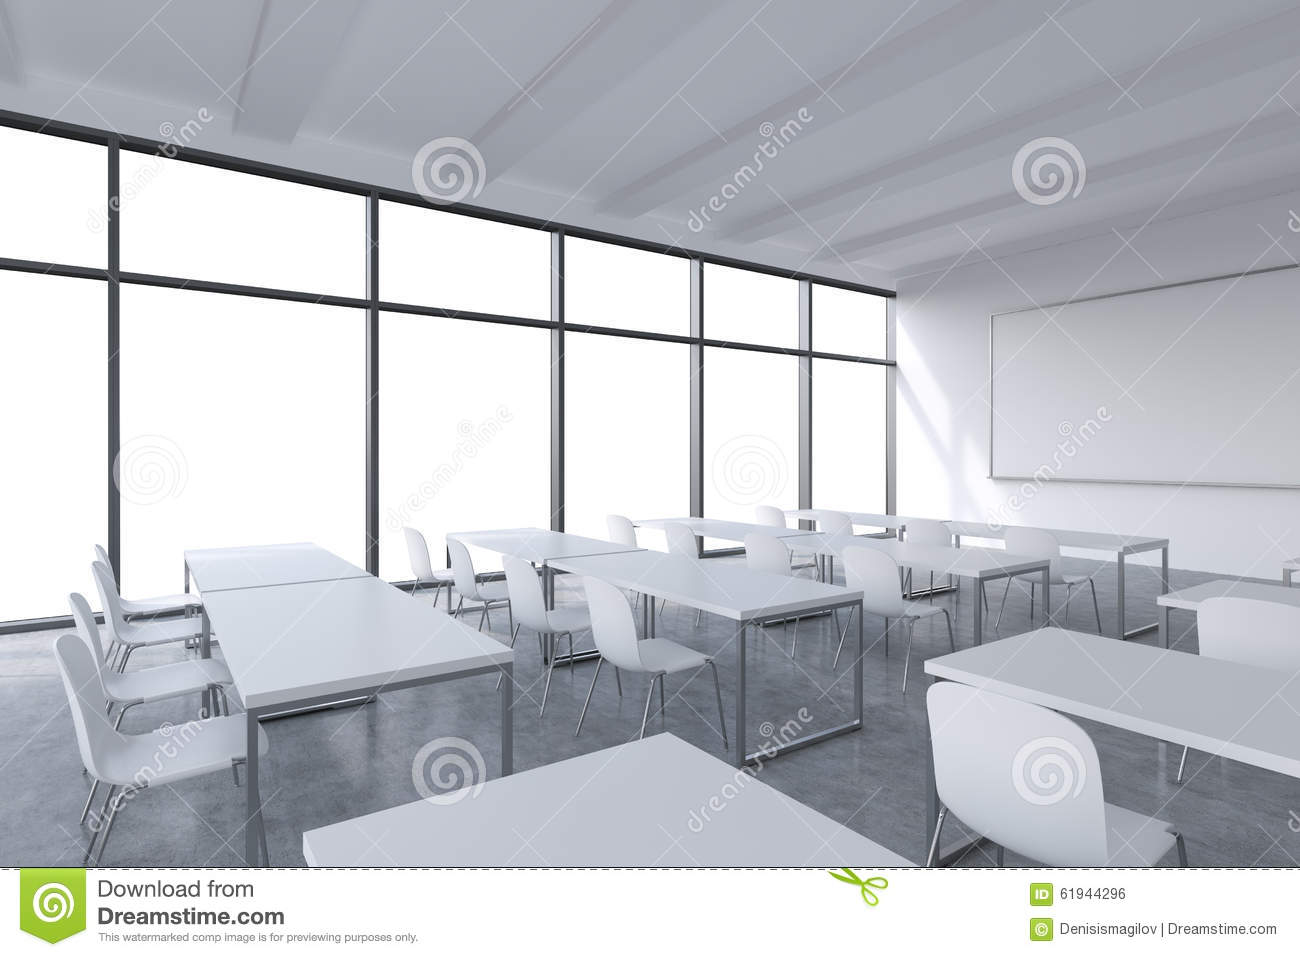 Modern Classroom Clipart : A modern panoramic classroom with white copy space in the